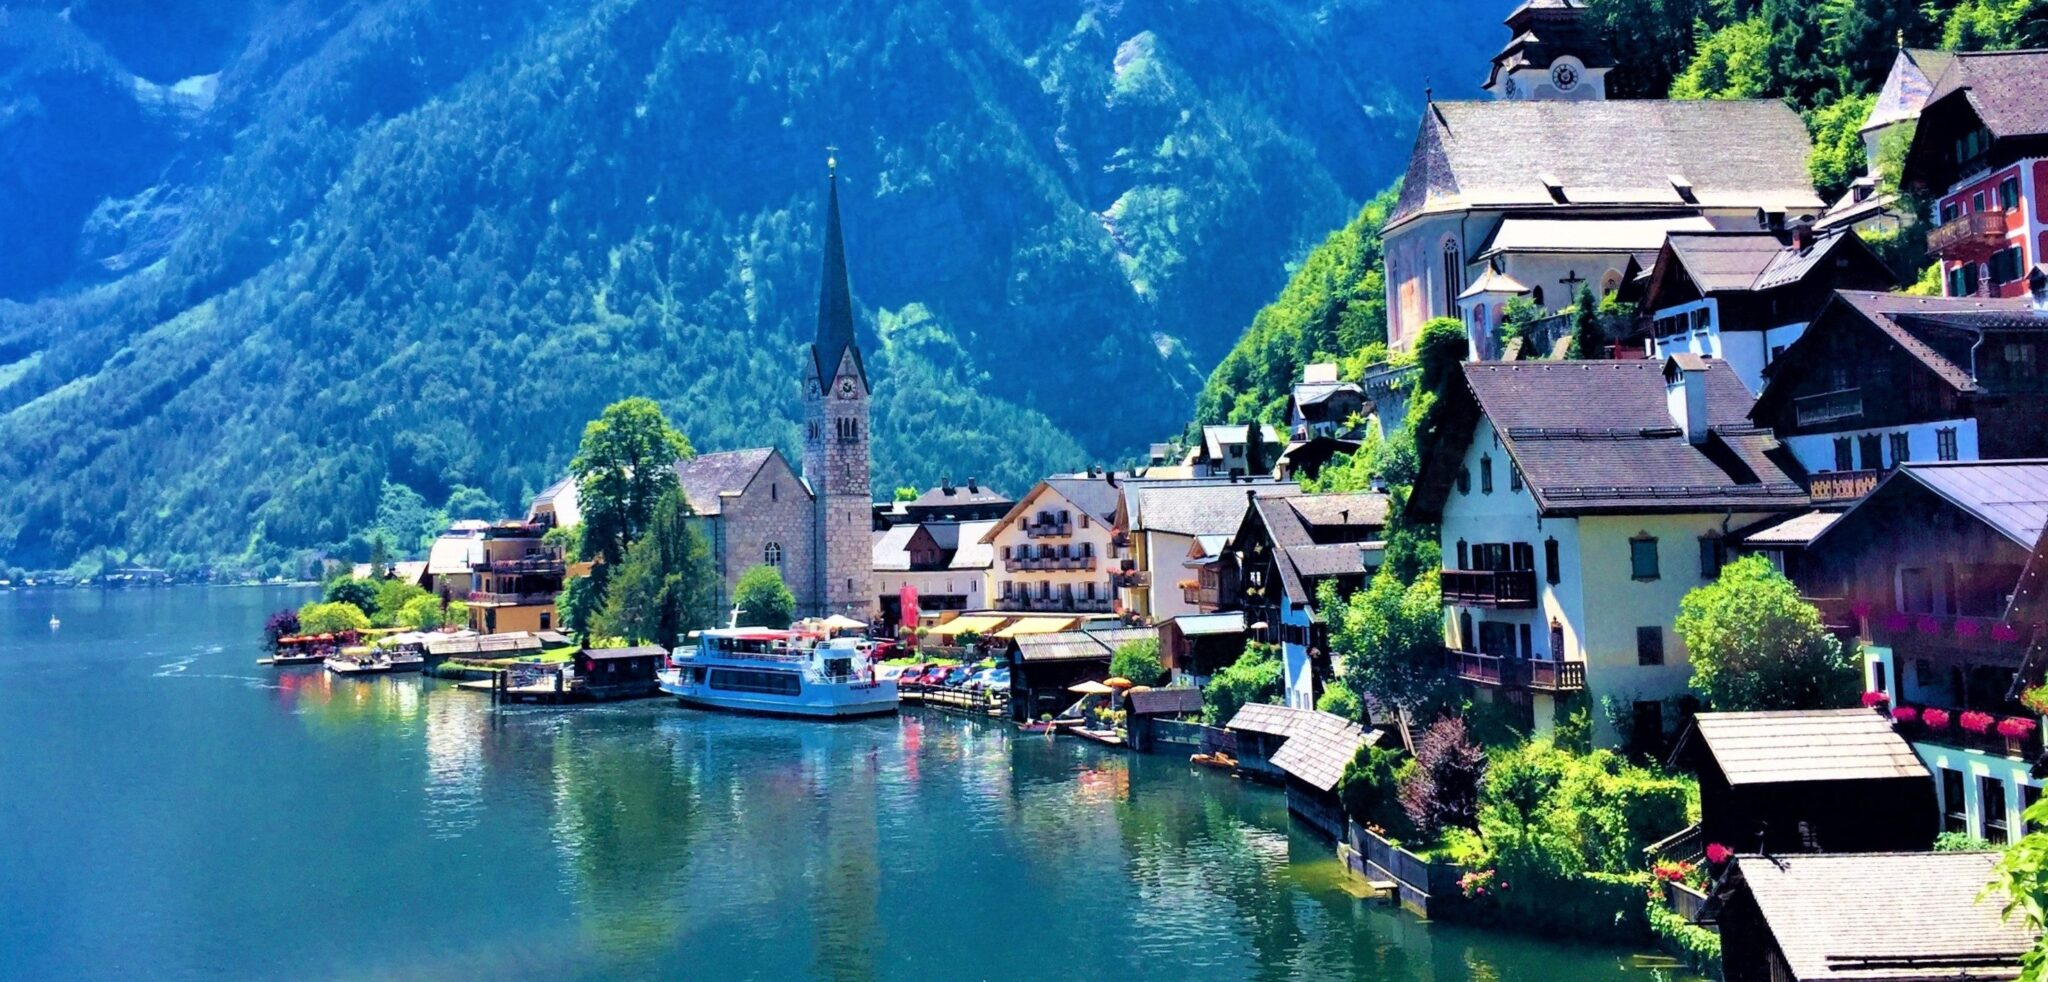 The Best Things To Do In Hallstatt, Austria – A Complete Travel Guide